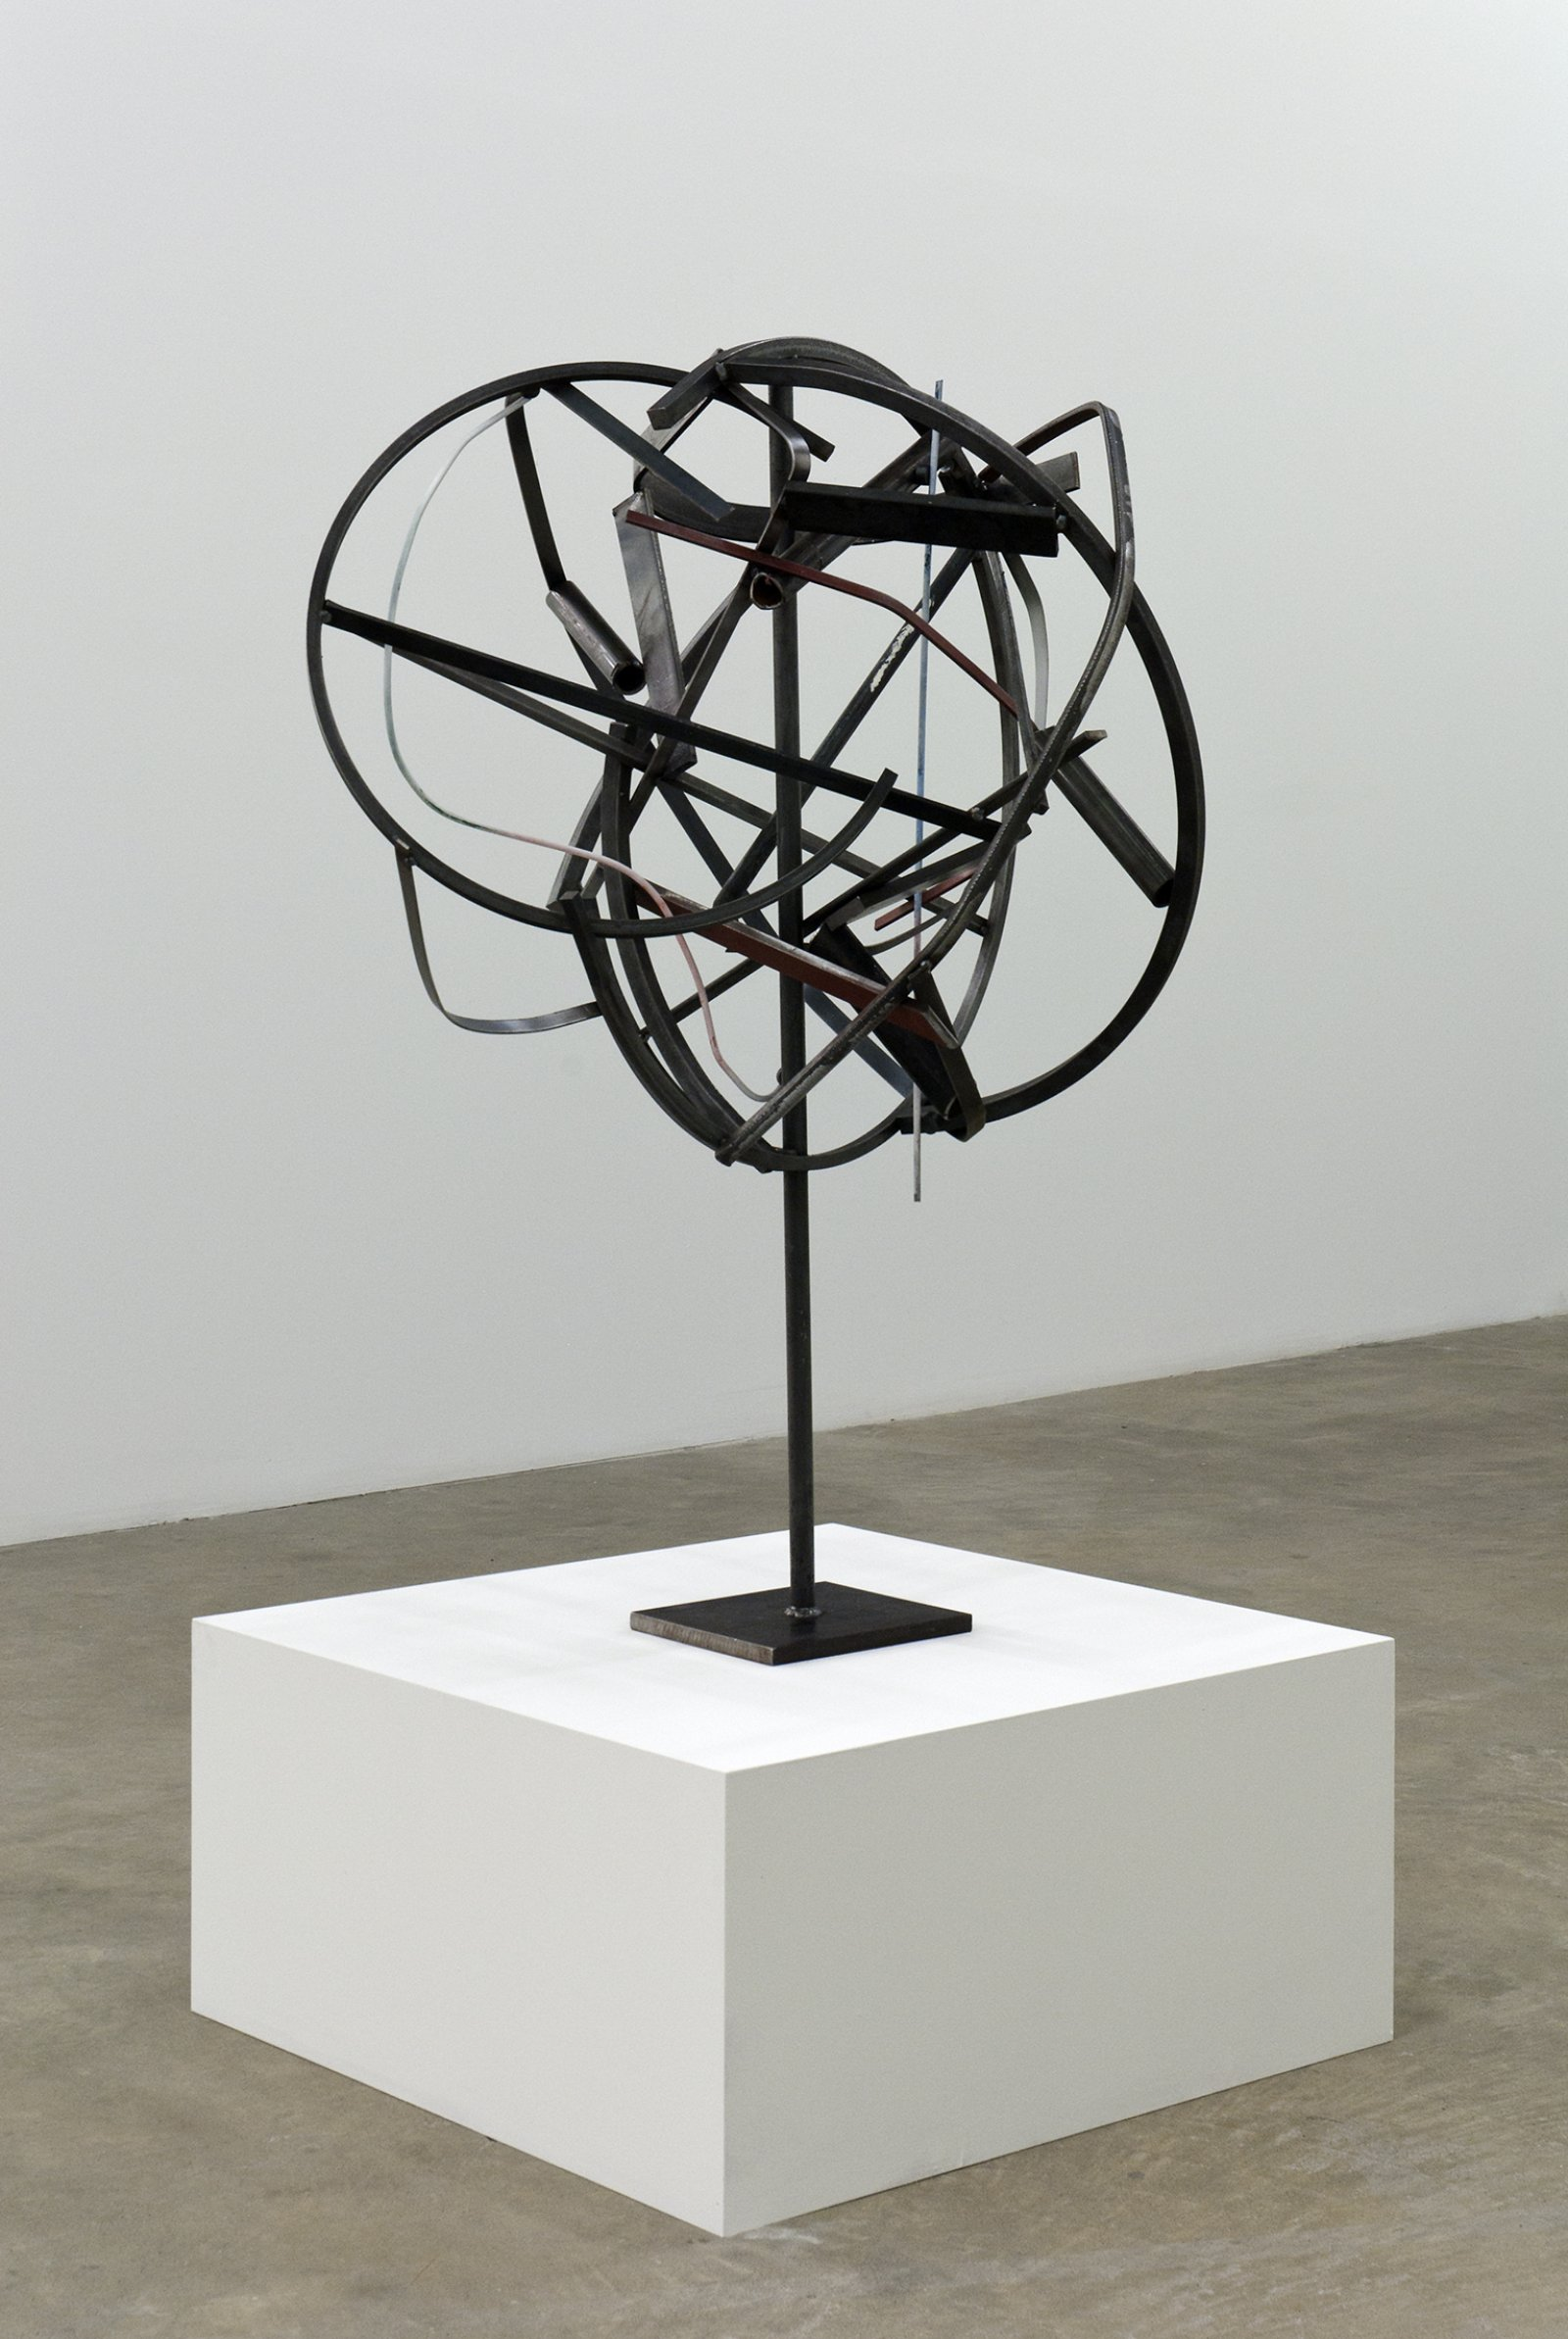 ​Damian Moppett, Untitled, 2010, steel, magnets, 47 x 31 x 30 in. (119 x 79 x 76 cm) by Damian Moppett